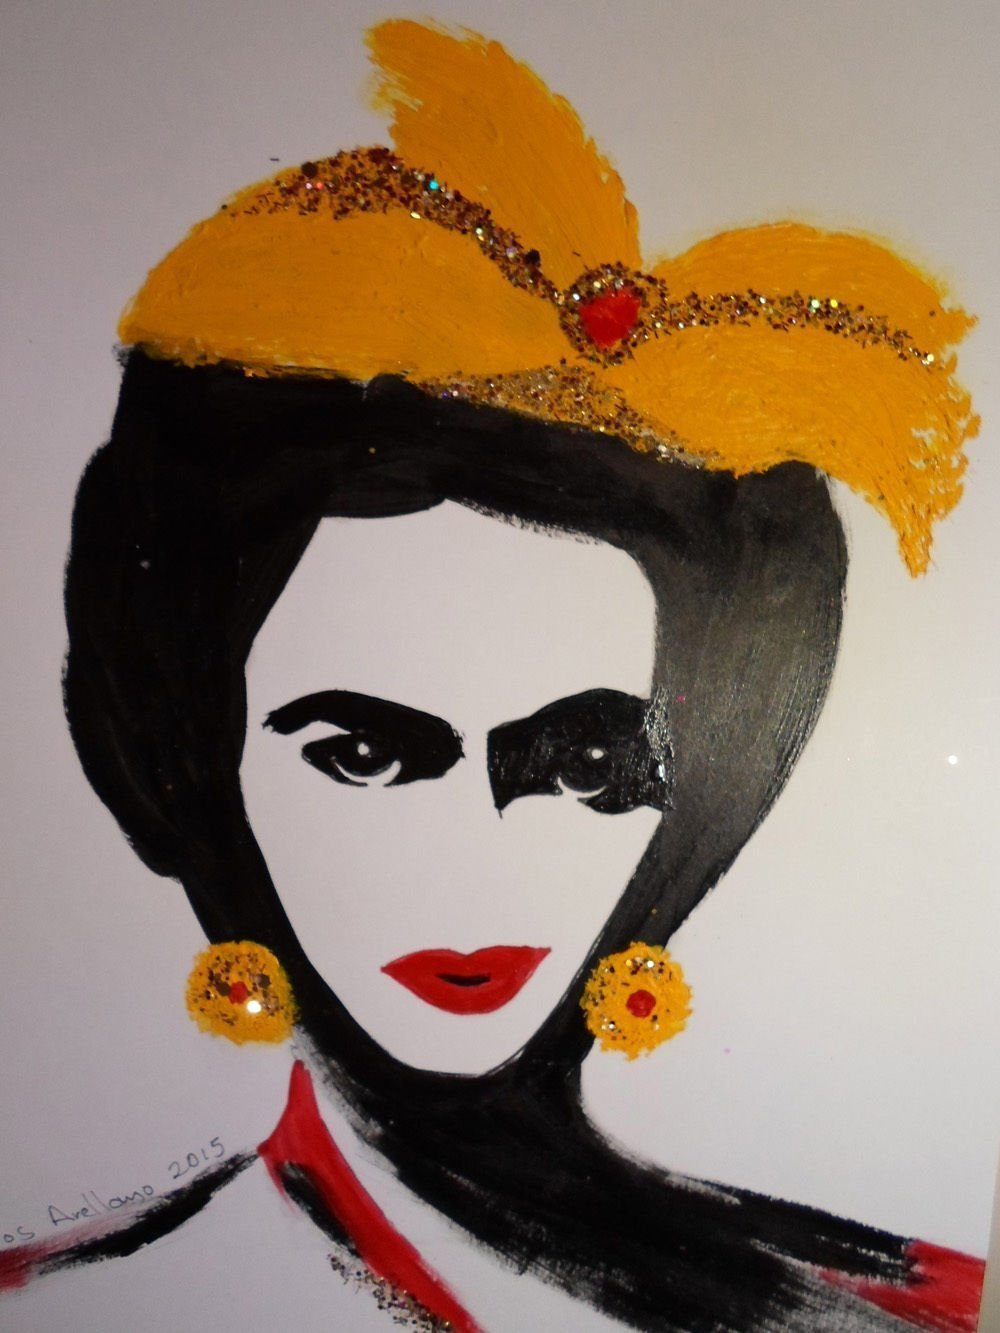 FRIDA KAHLO - Yellow BOW - Abstract - POP - MEXICAN FOLK ART Style :: ORIGINAL PAINTING - Acrylics and Ink - Modern Painting on Heavy White Paper - SIZE:11''x8.5'' - Signed by the Artist